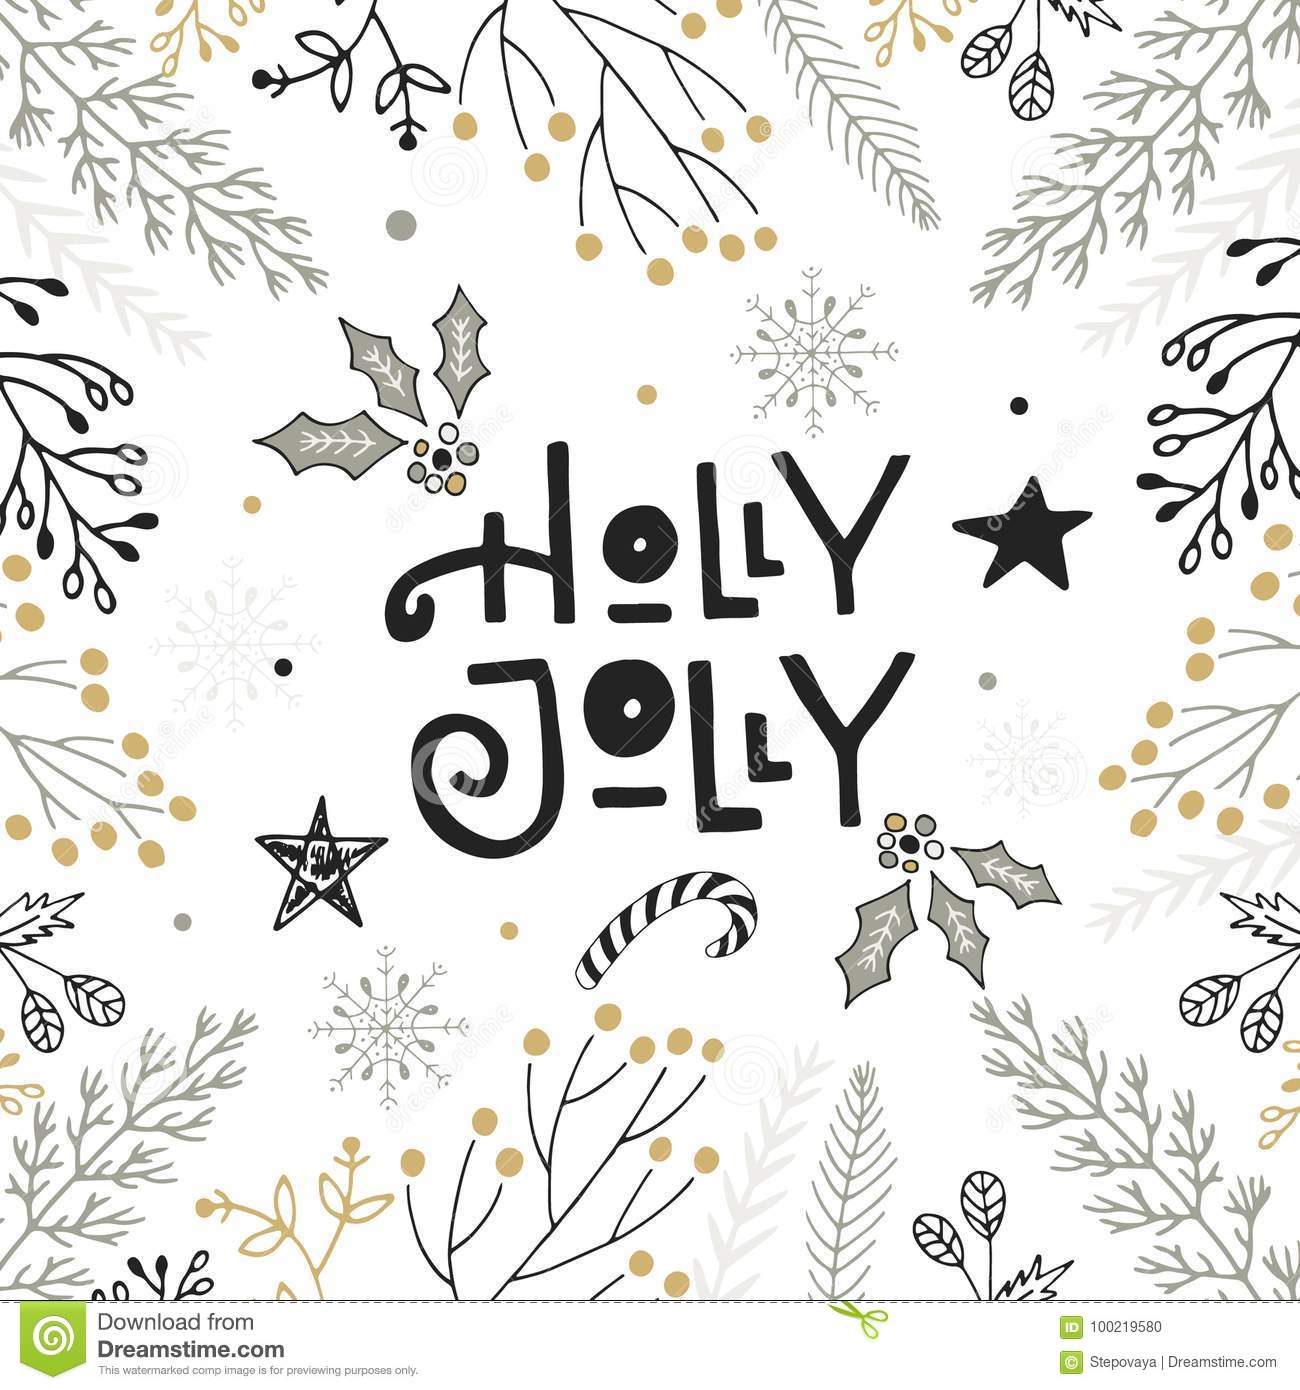 holly jolly hand drawn christmas lettering with floral and decorations cute new year clip